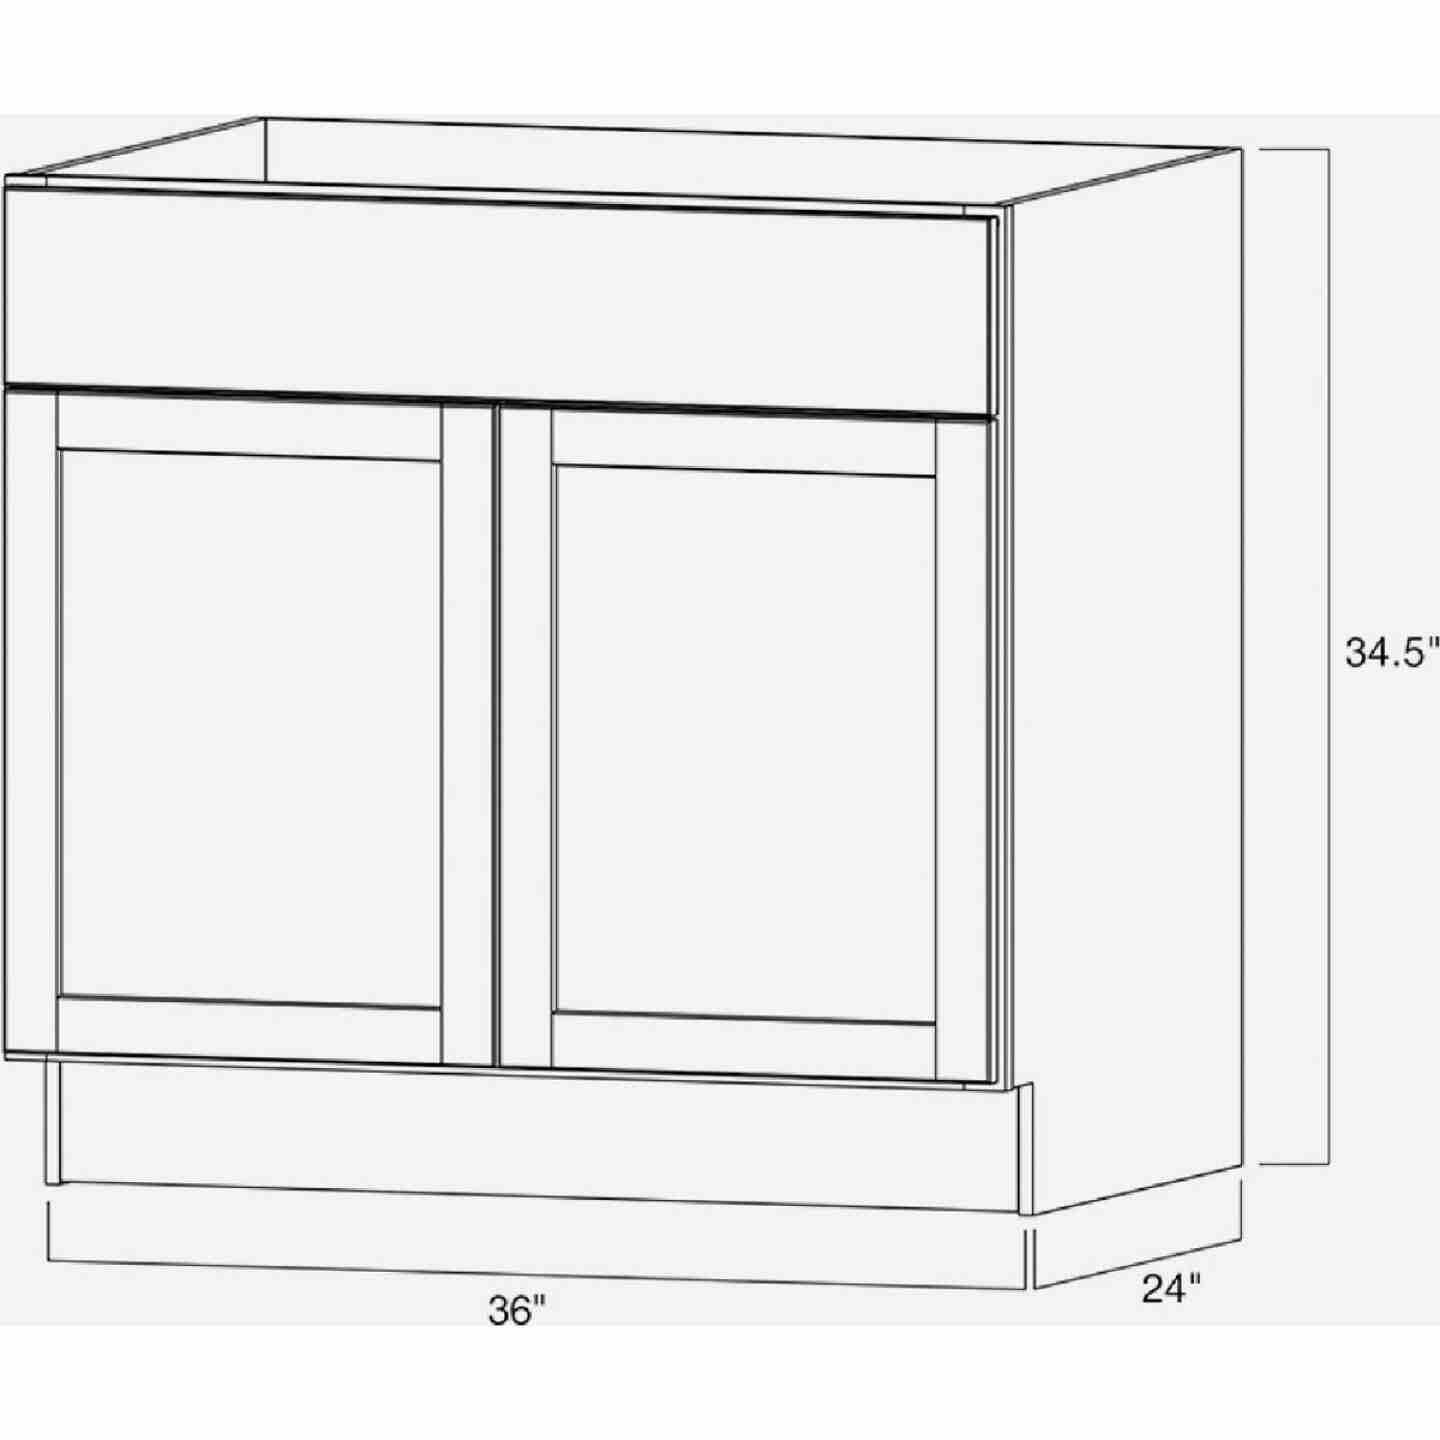 Continental Cabinets Andover Shaker 36 In. W x 34 In. H x 24 In. D White Thermofoil Base Kitchen Cabinet Image 4